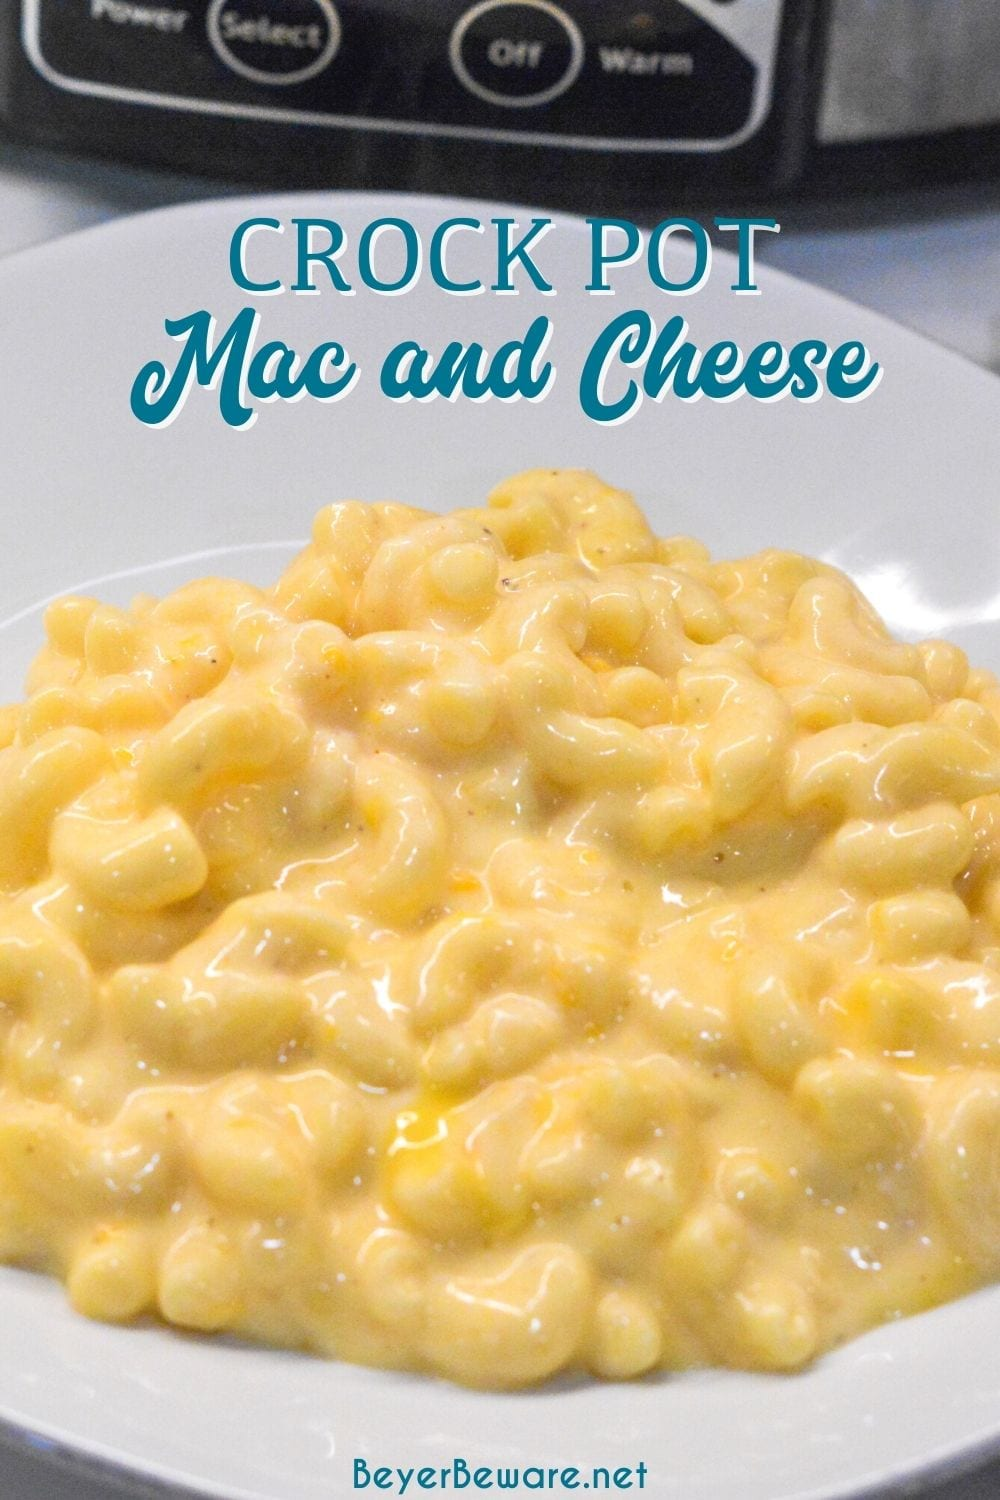 Crock pot mac and cheese recipe is made with alfredo sauce, sour cream, velveeta for ultimate slow cooker mac n cheese.